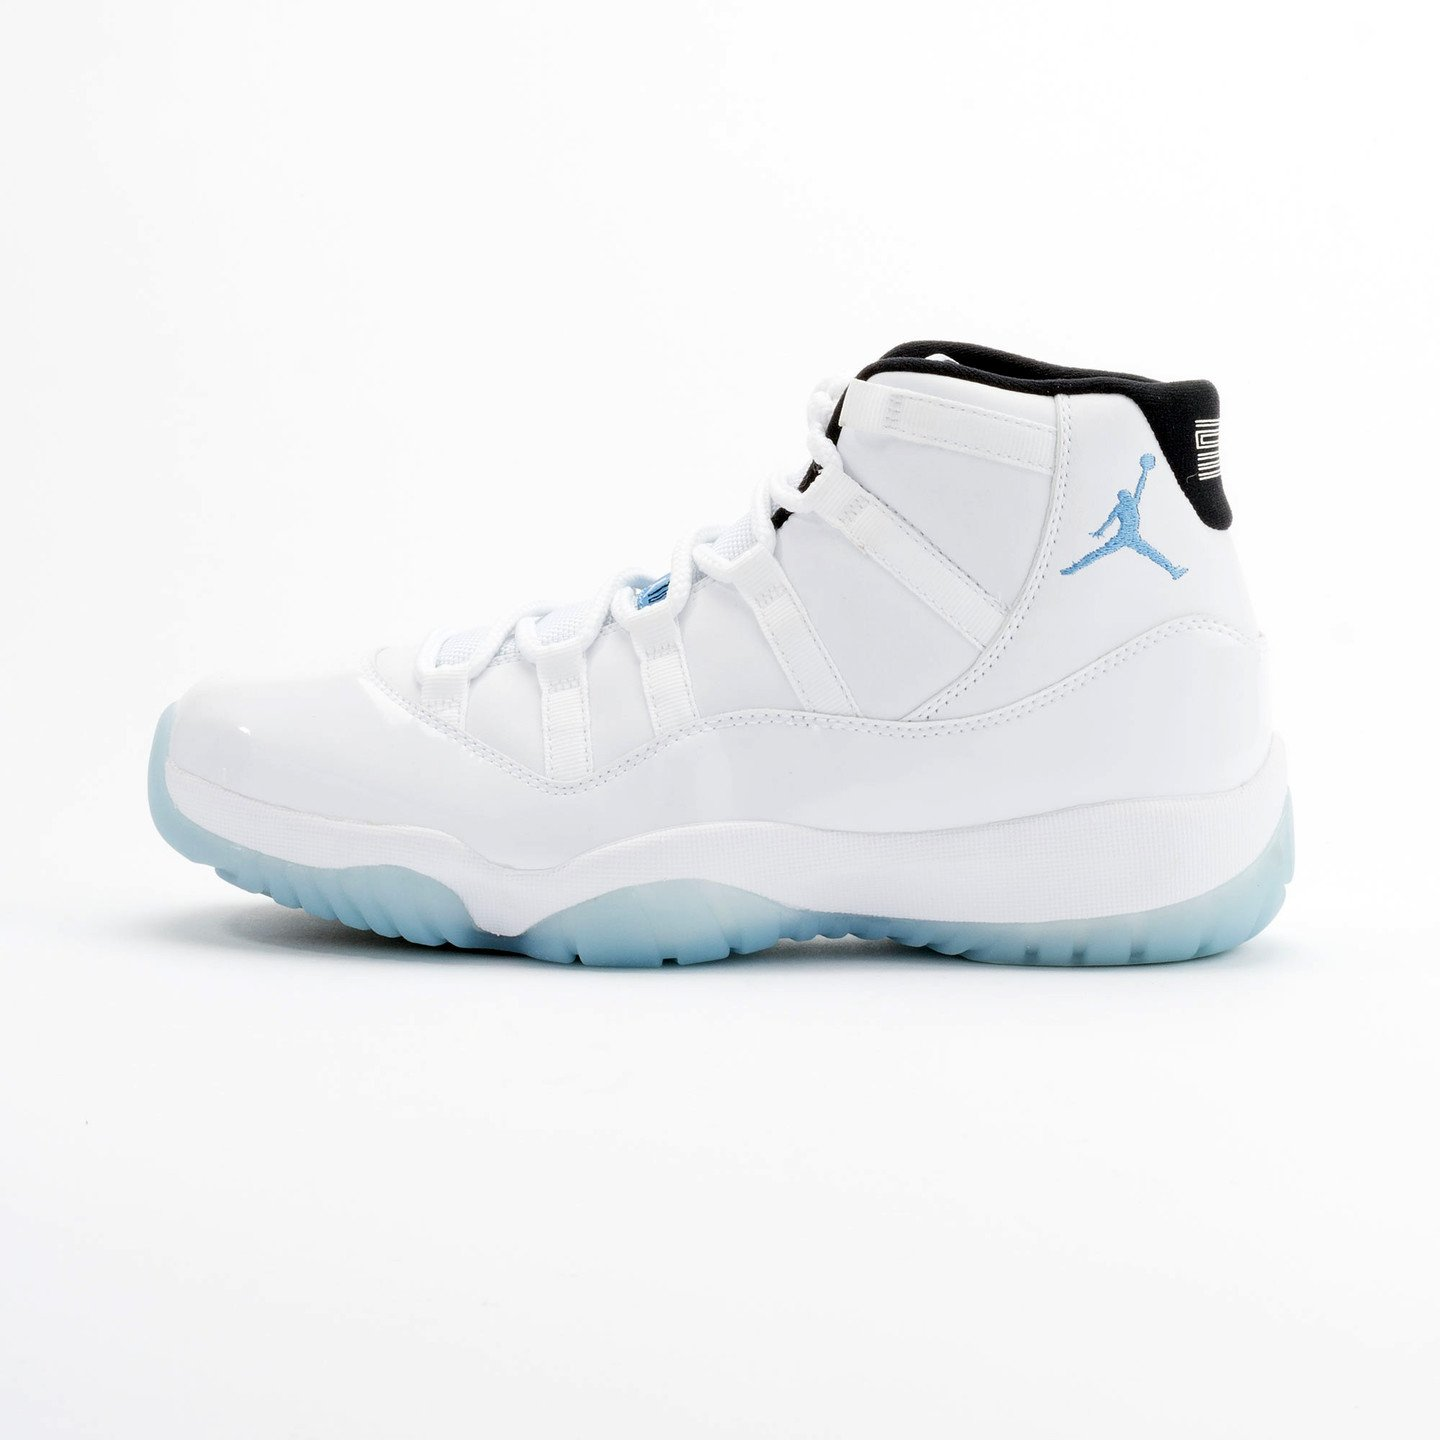 Jordan Air Jordan 11 Retro White/Legend Blue-Black 378037-117-46